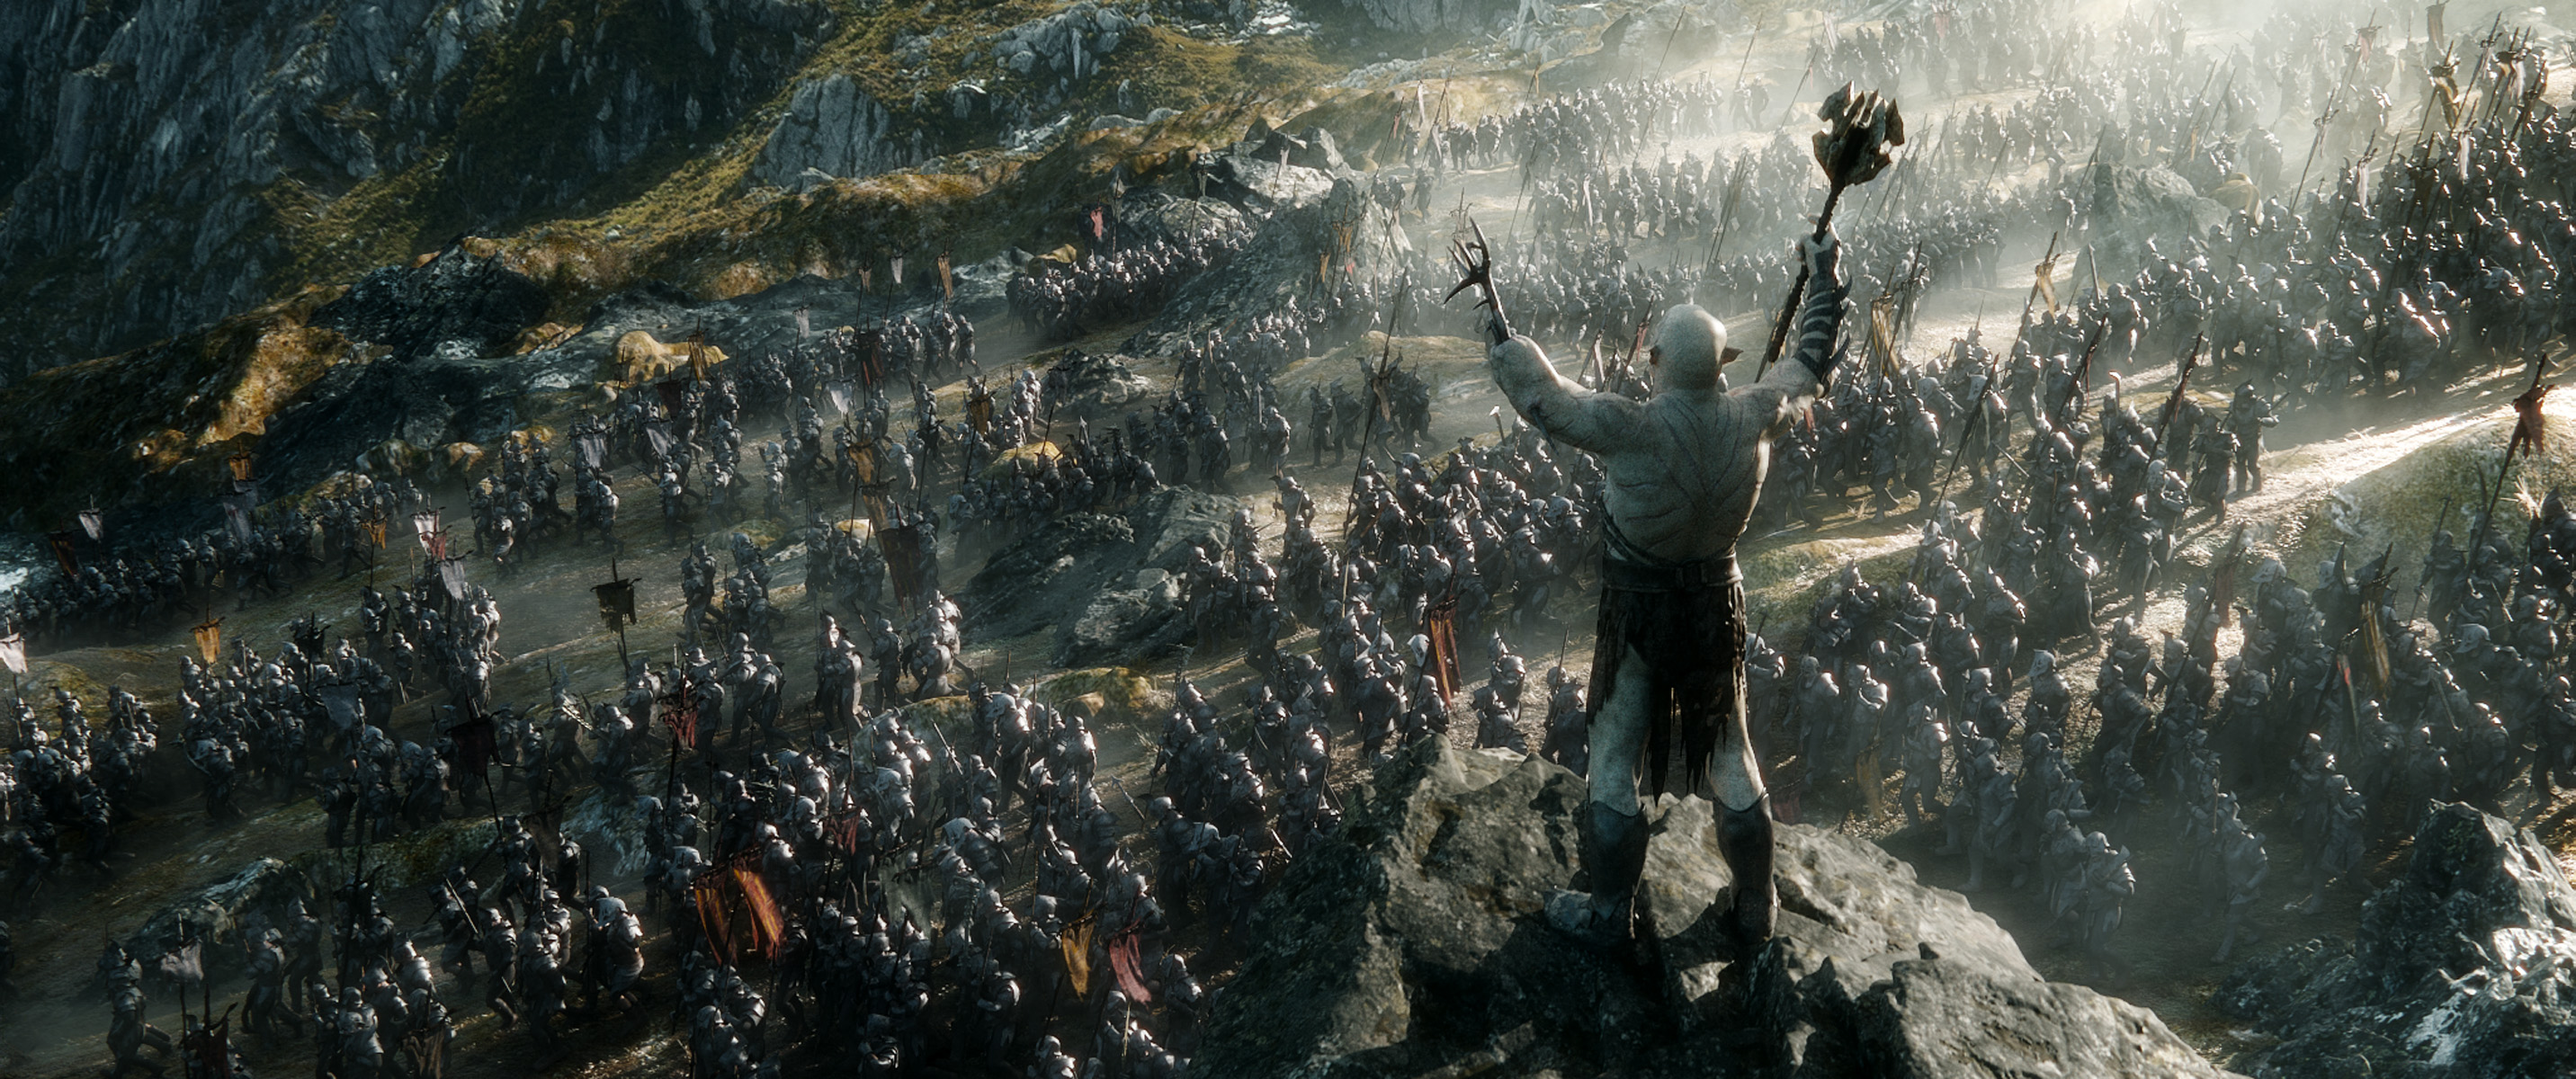 THE HOBBIT: THE BATTLE OF THE FIVE ARMIES - 4k Trailer and